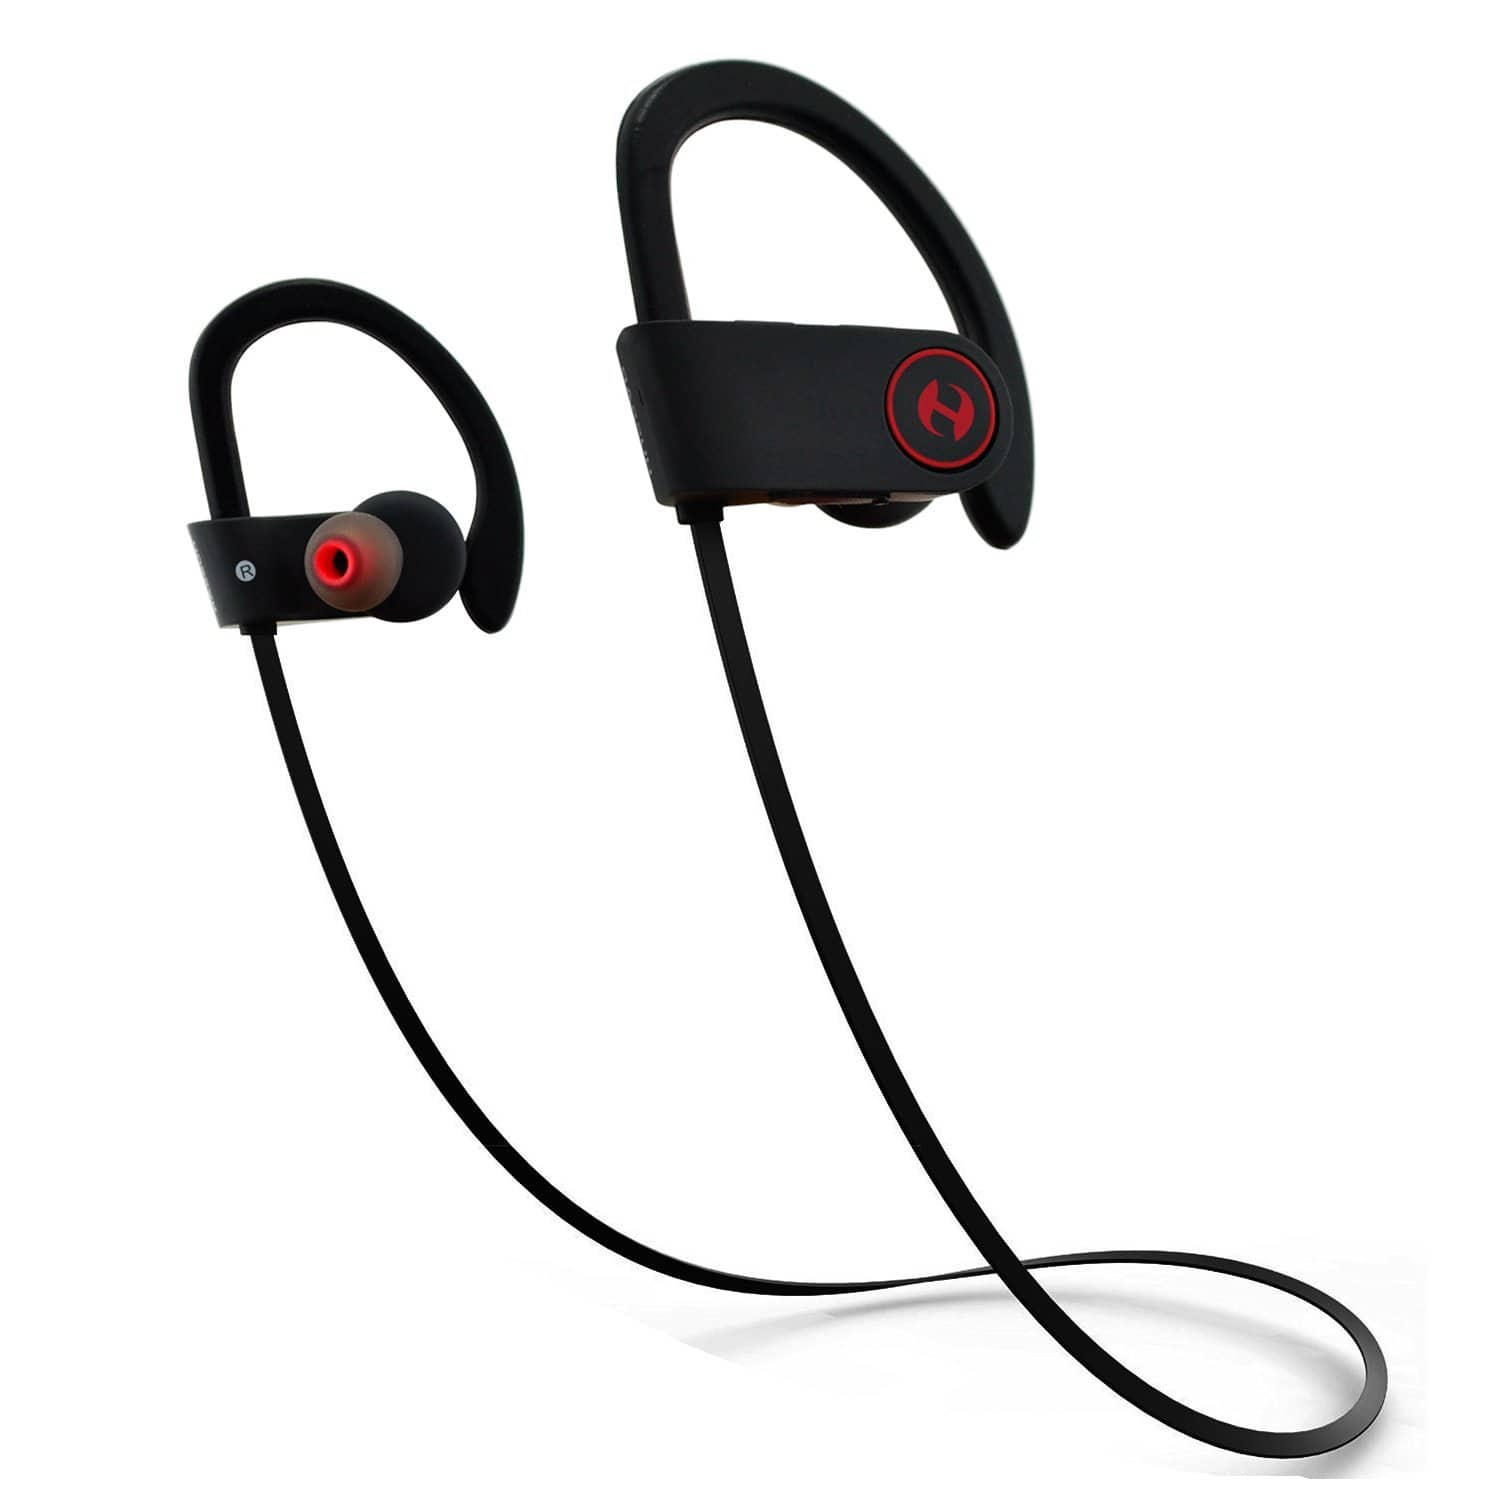 Amazon - Bluetooth Headphones, Wireless Sports Earphones with Mic, IPX7 Waterproof, Noise Cancelling $17.27 AC Free shipping w/ Prime